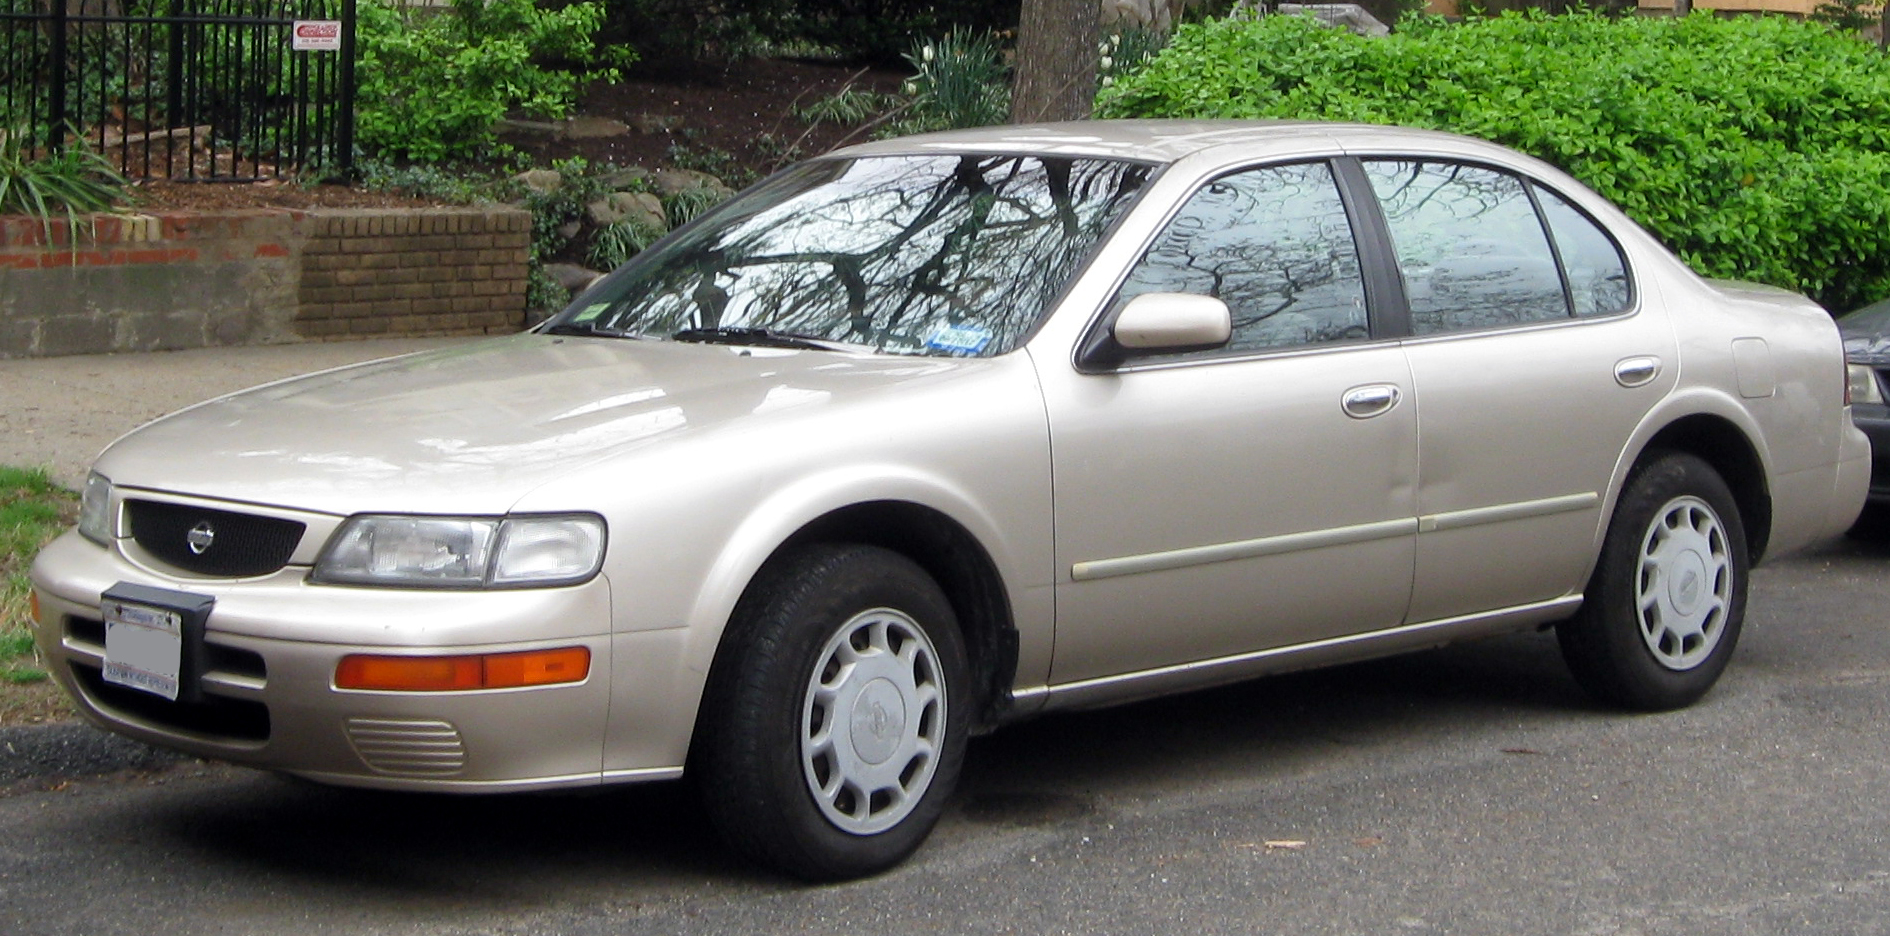 Nissan restored the 1996 Maxima that they bought after the ...